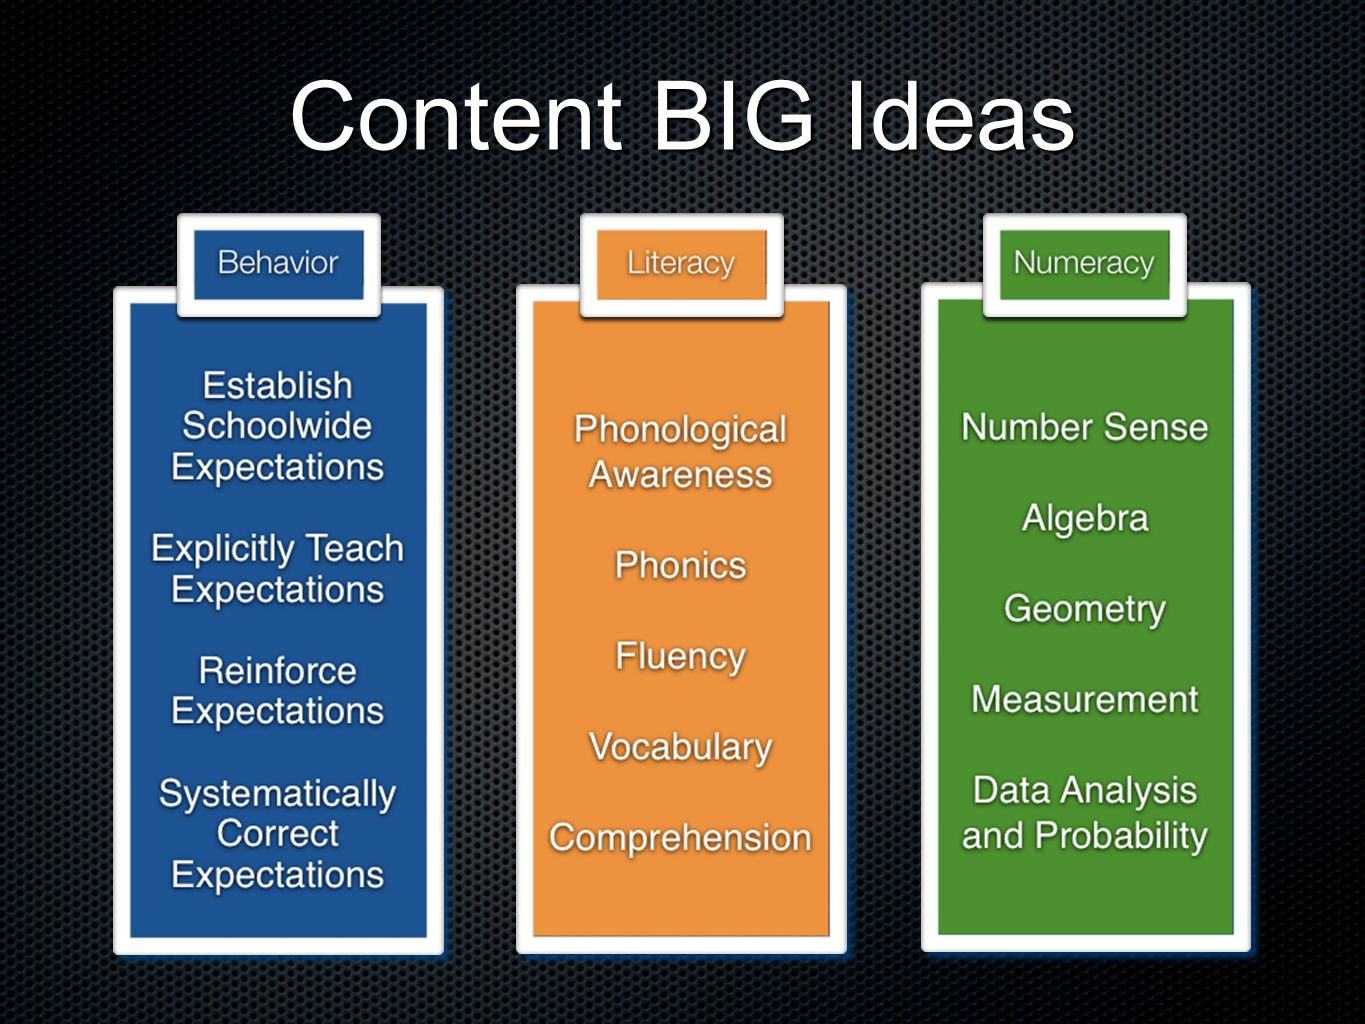 Content BIG Ideas